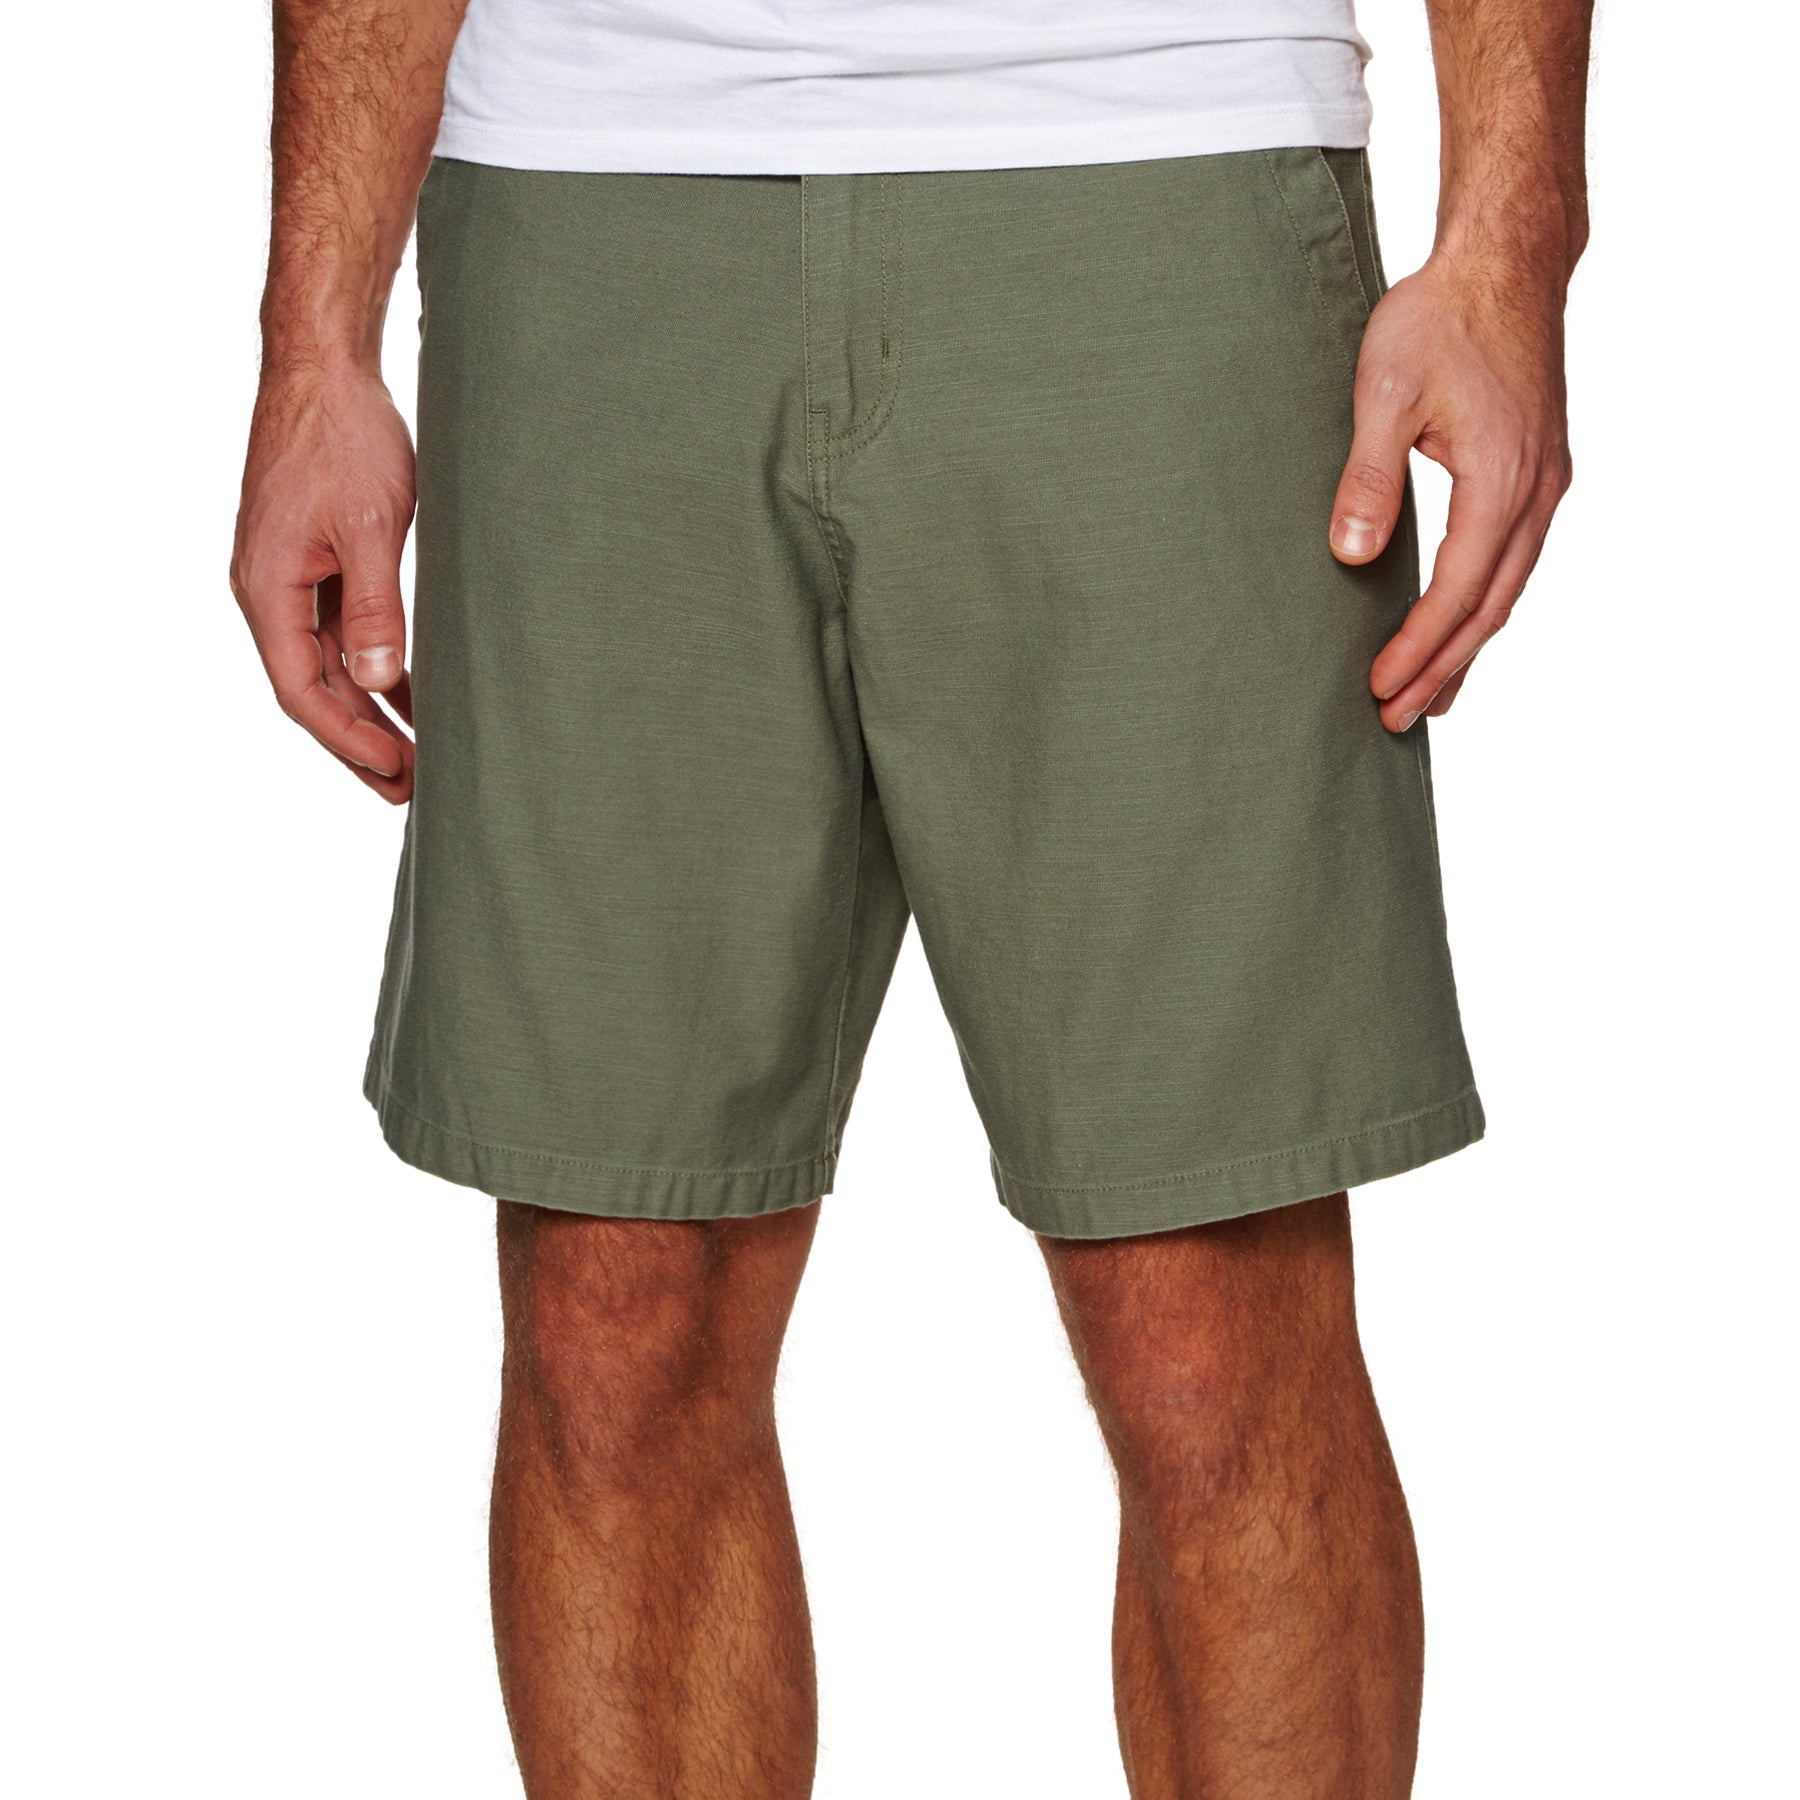 Depactus Trace Walk Shorts - Military